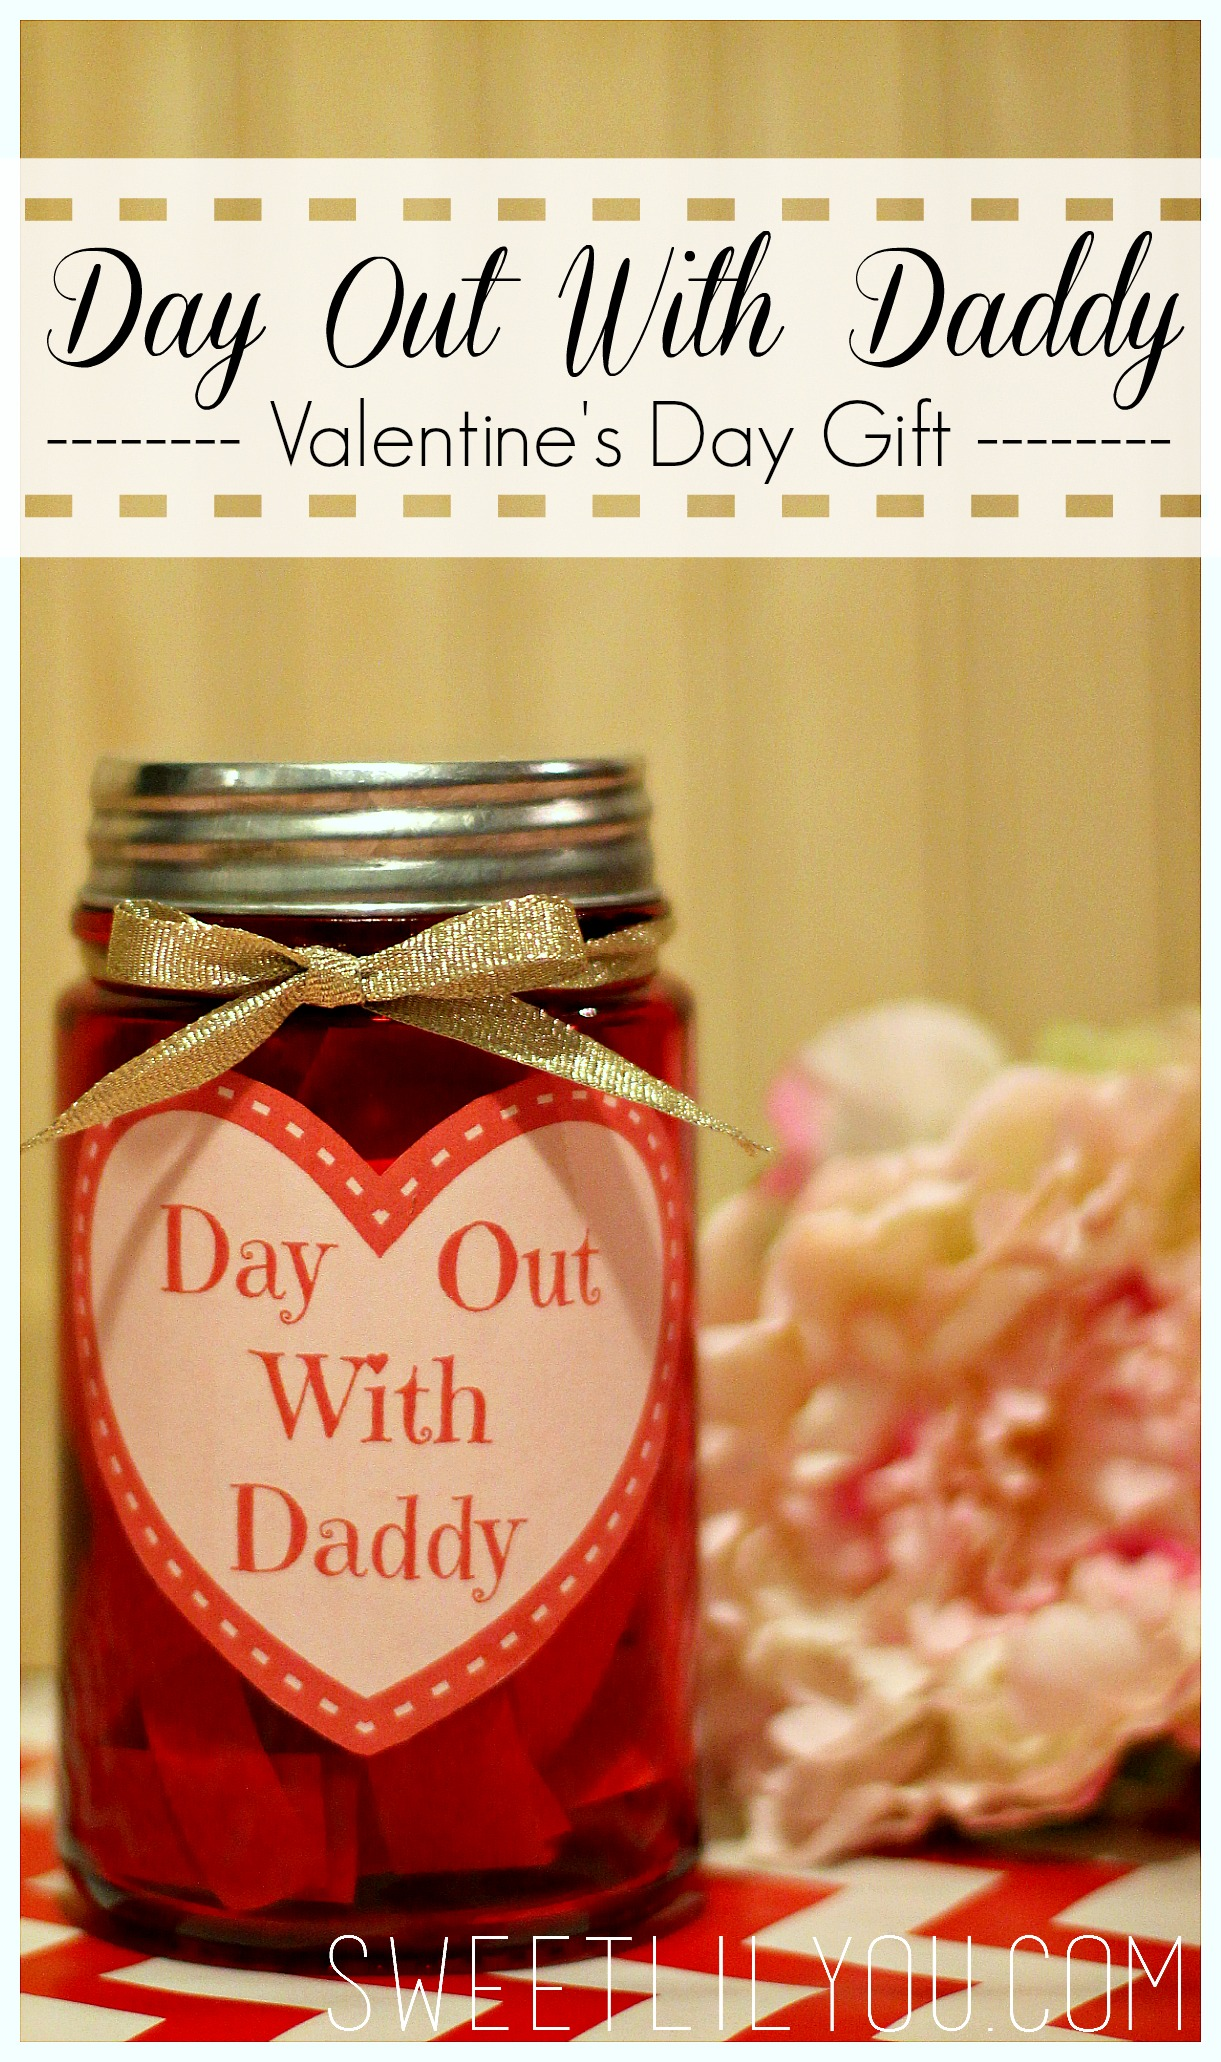 day out with daddy jar valentine s day gift for dad sweet lil you